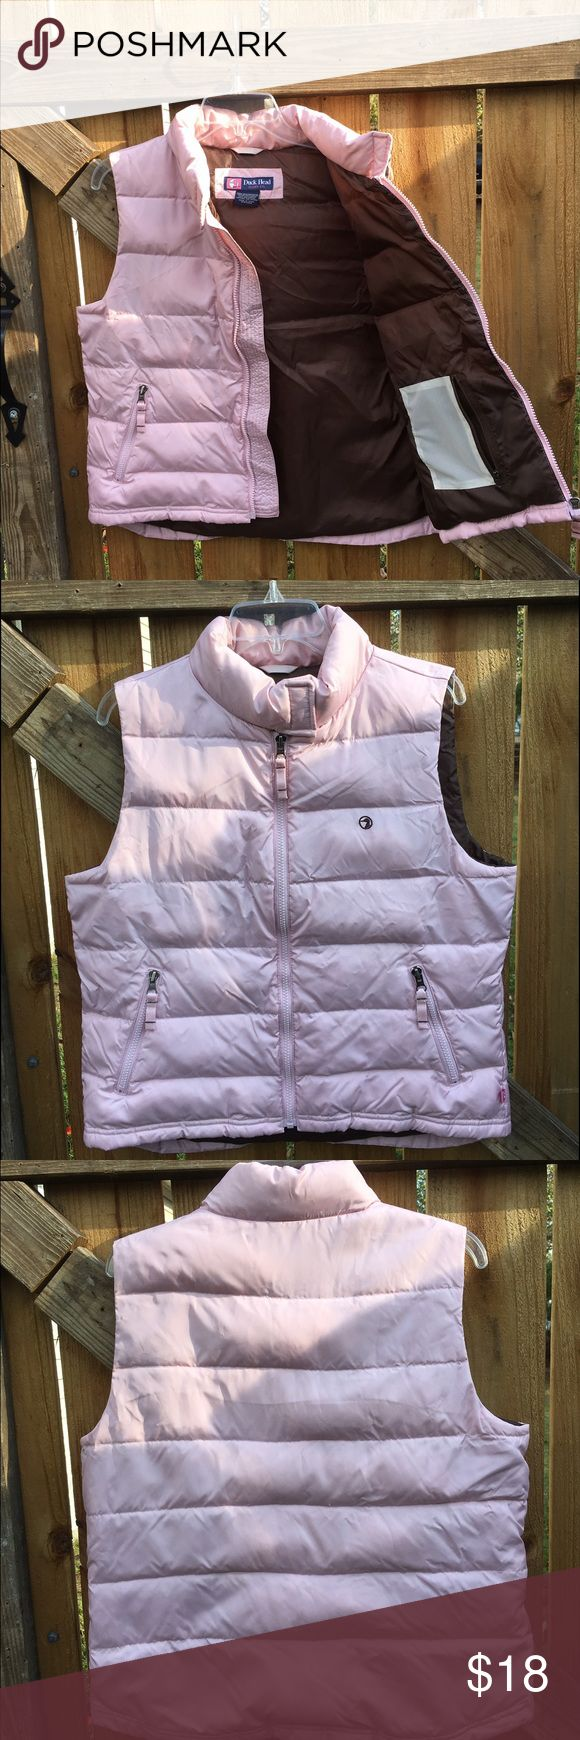 Light Pink Vest Stay cute in the cold! Pretty pale pink with warm brown interior. Four pockets--two inside and two outside! Zips up the front with a Velcro closure at the top. Good used condition. Color is most like first picture. Duck Head Jeans Co. Jackets & Coats Vests